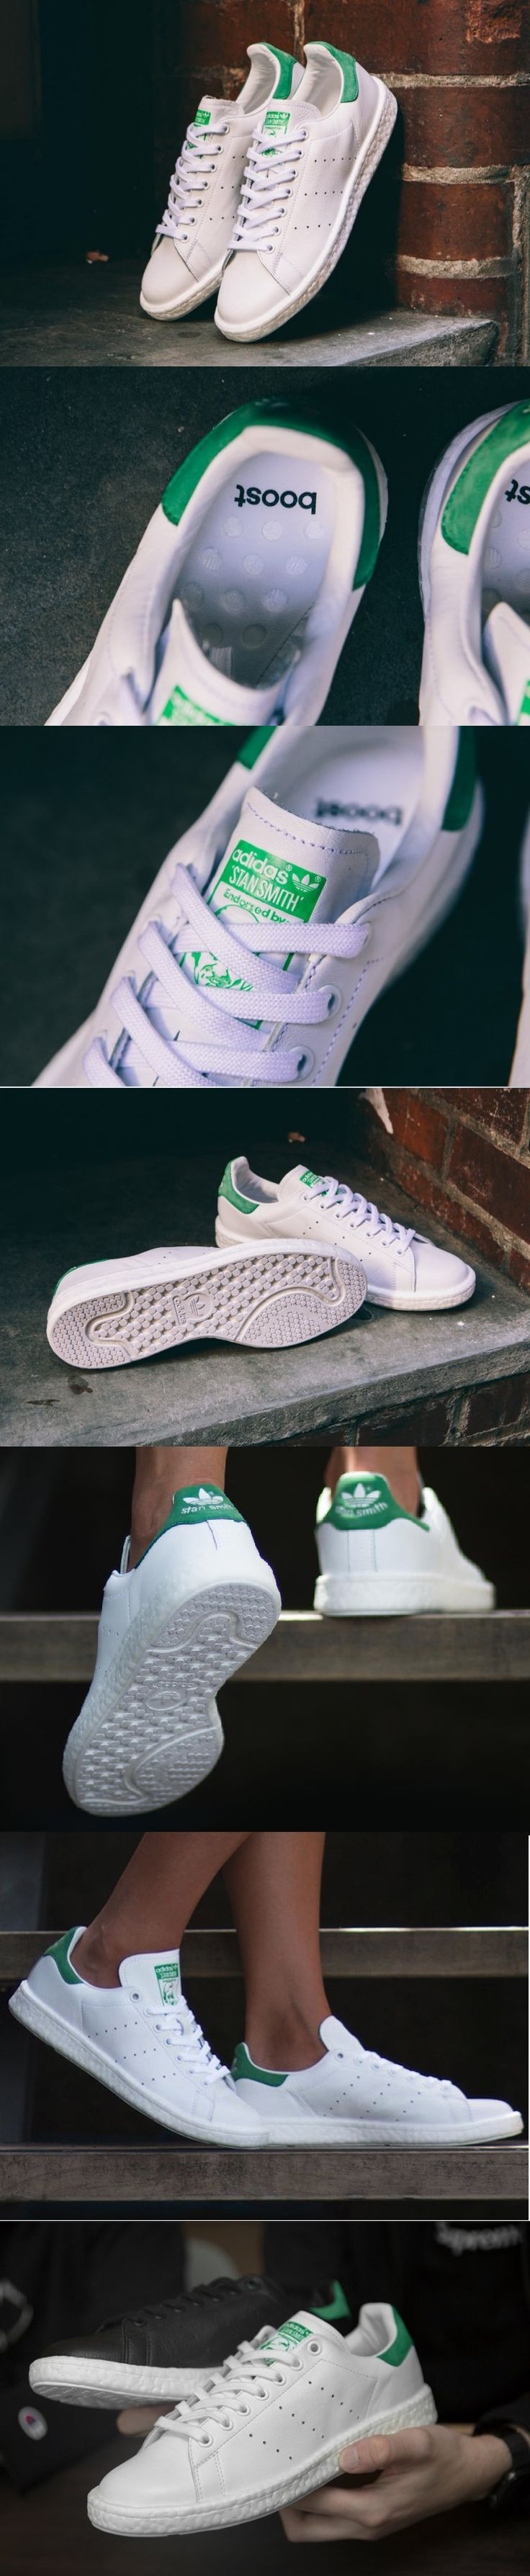 #Adidas #StanSmith #Boost OG #White #Green http://www.adidas.fr/chaussure-stan-smith-boost/BB0008.html